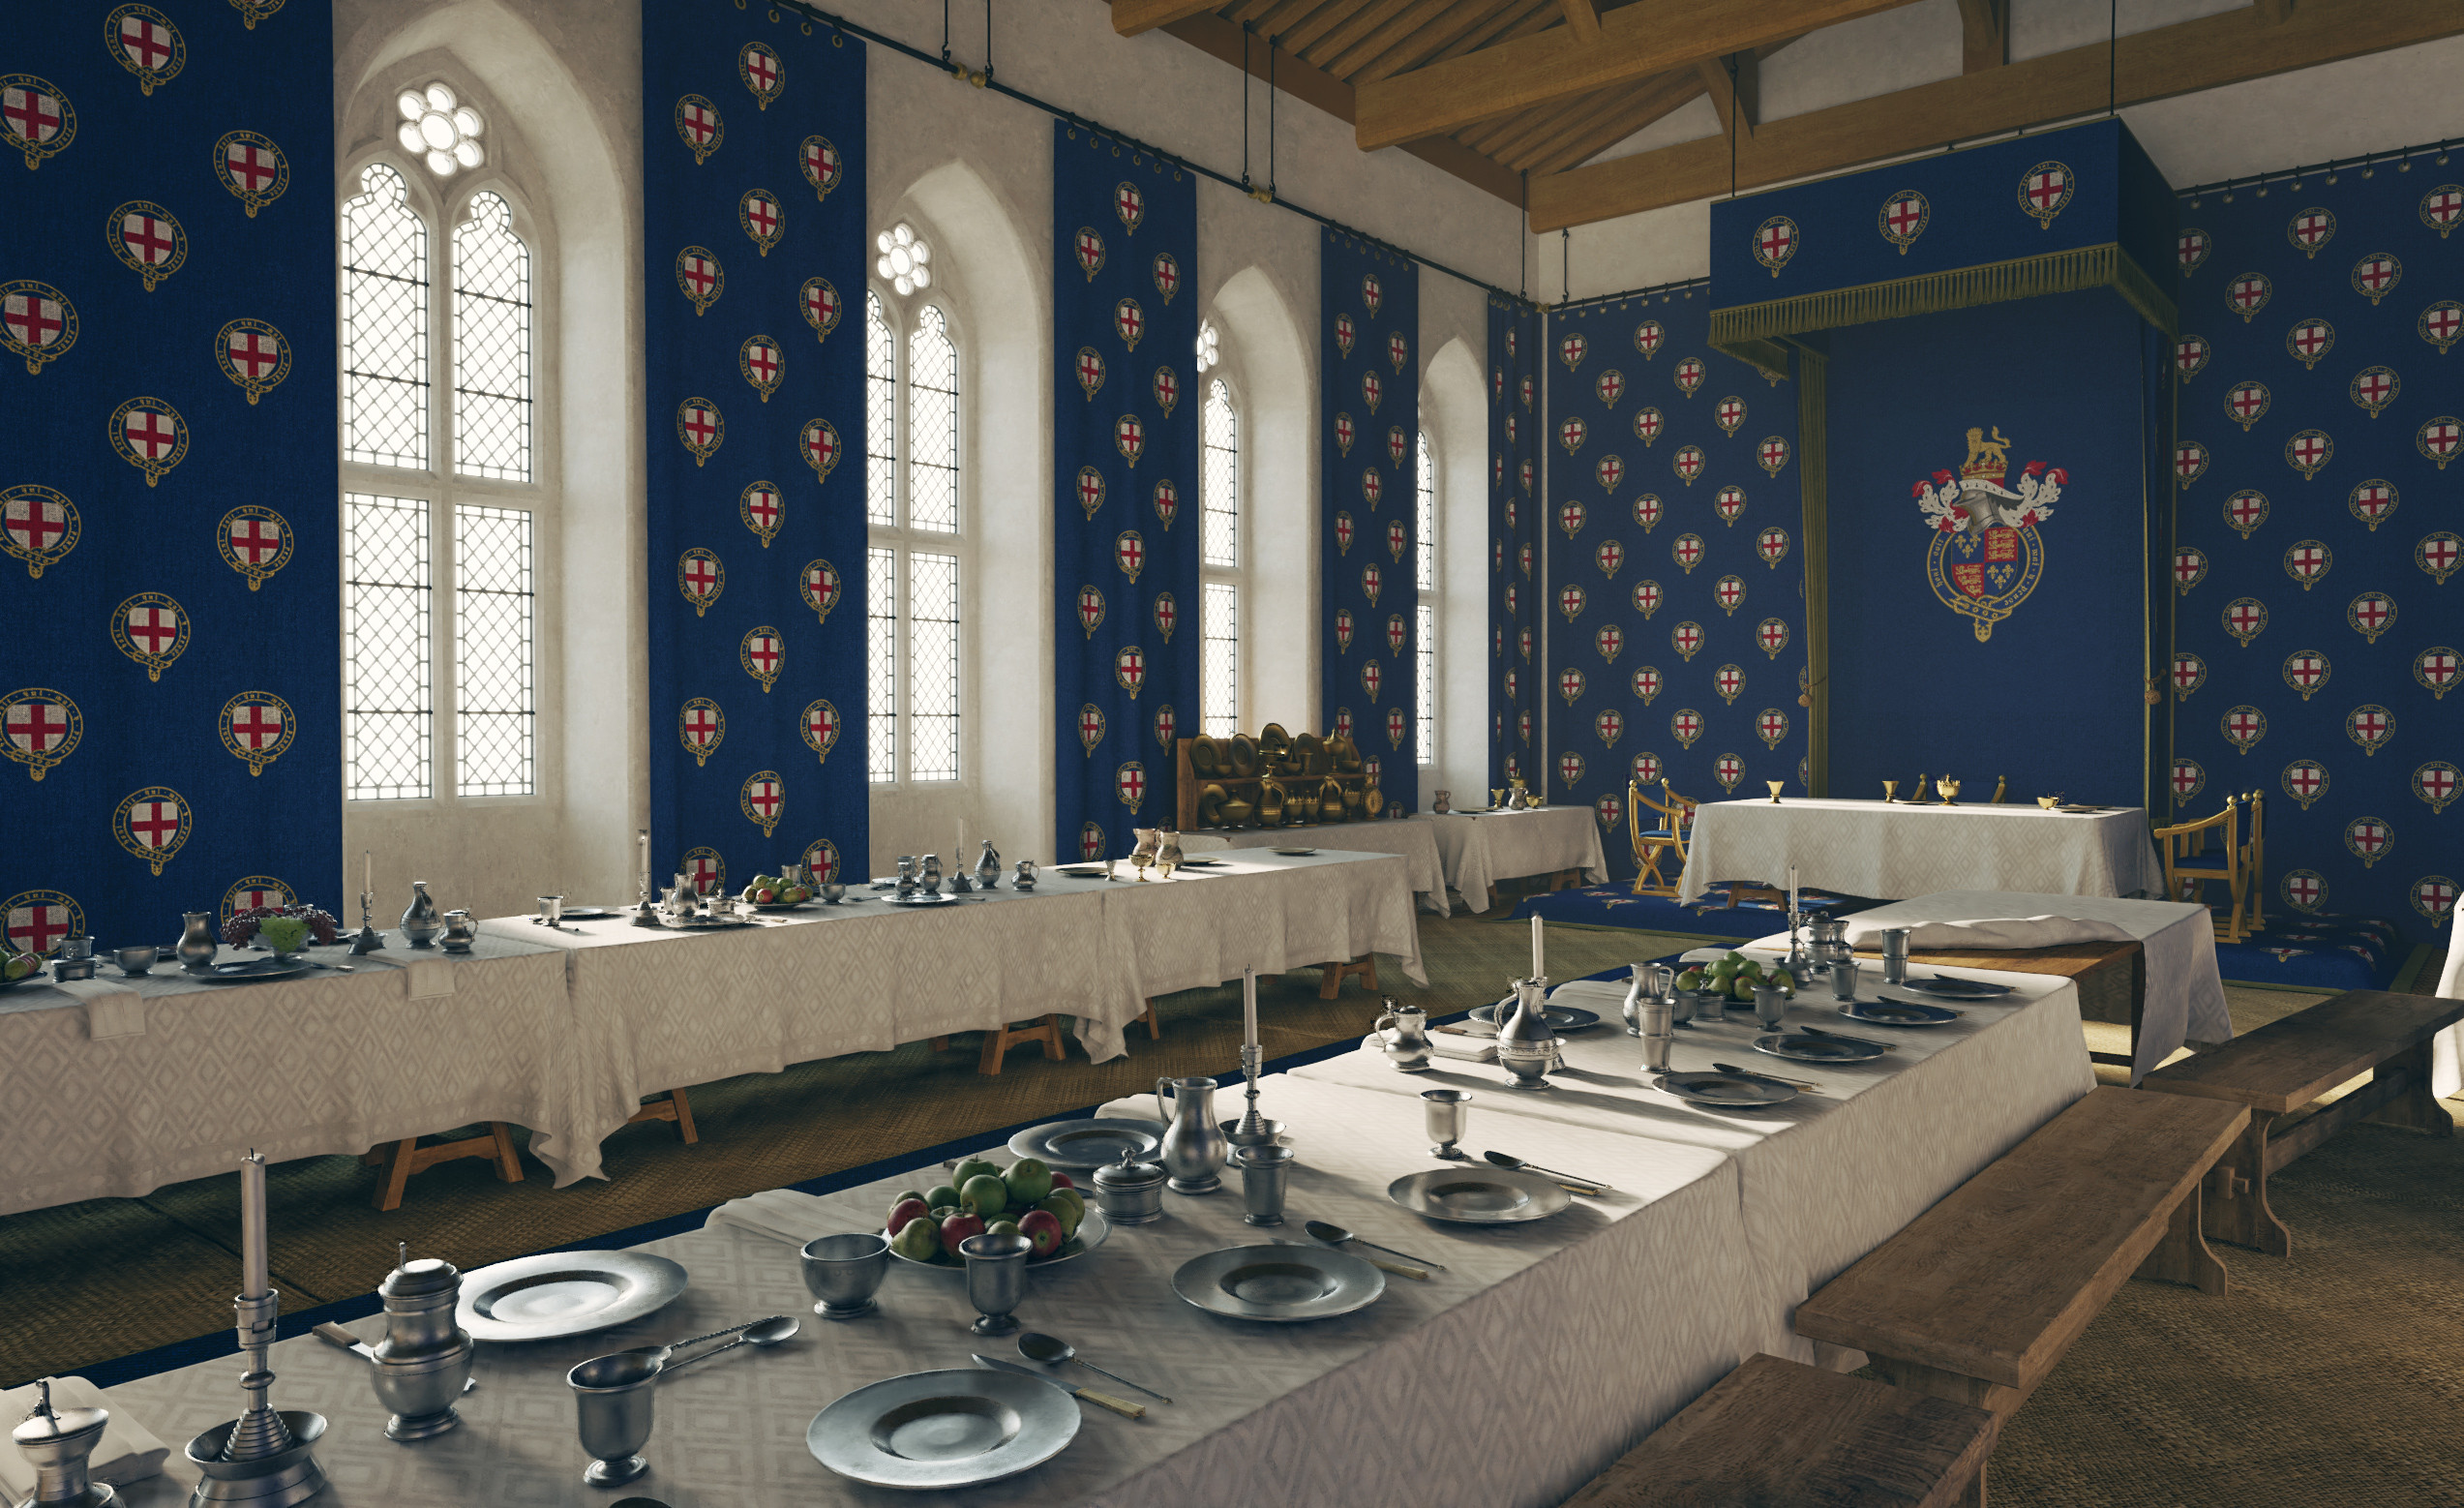 Digital reconstruction of the Great Chamber at Windsor Castle in 1476.